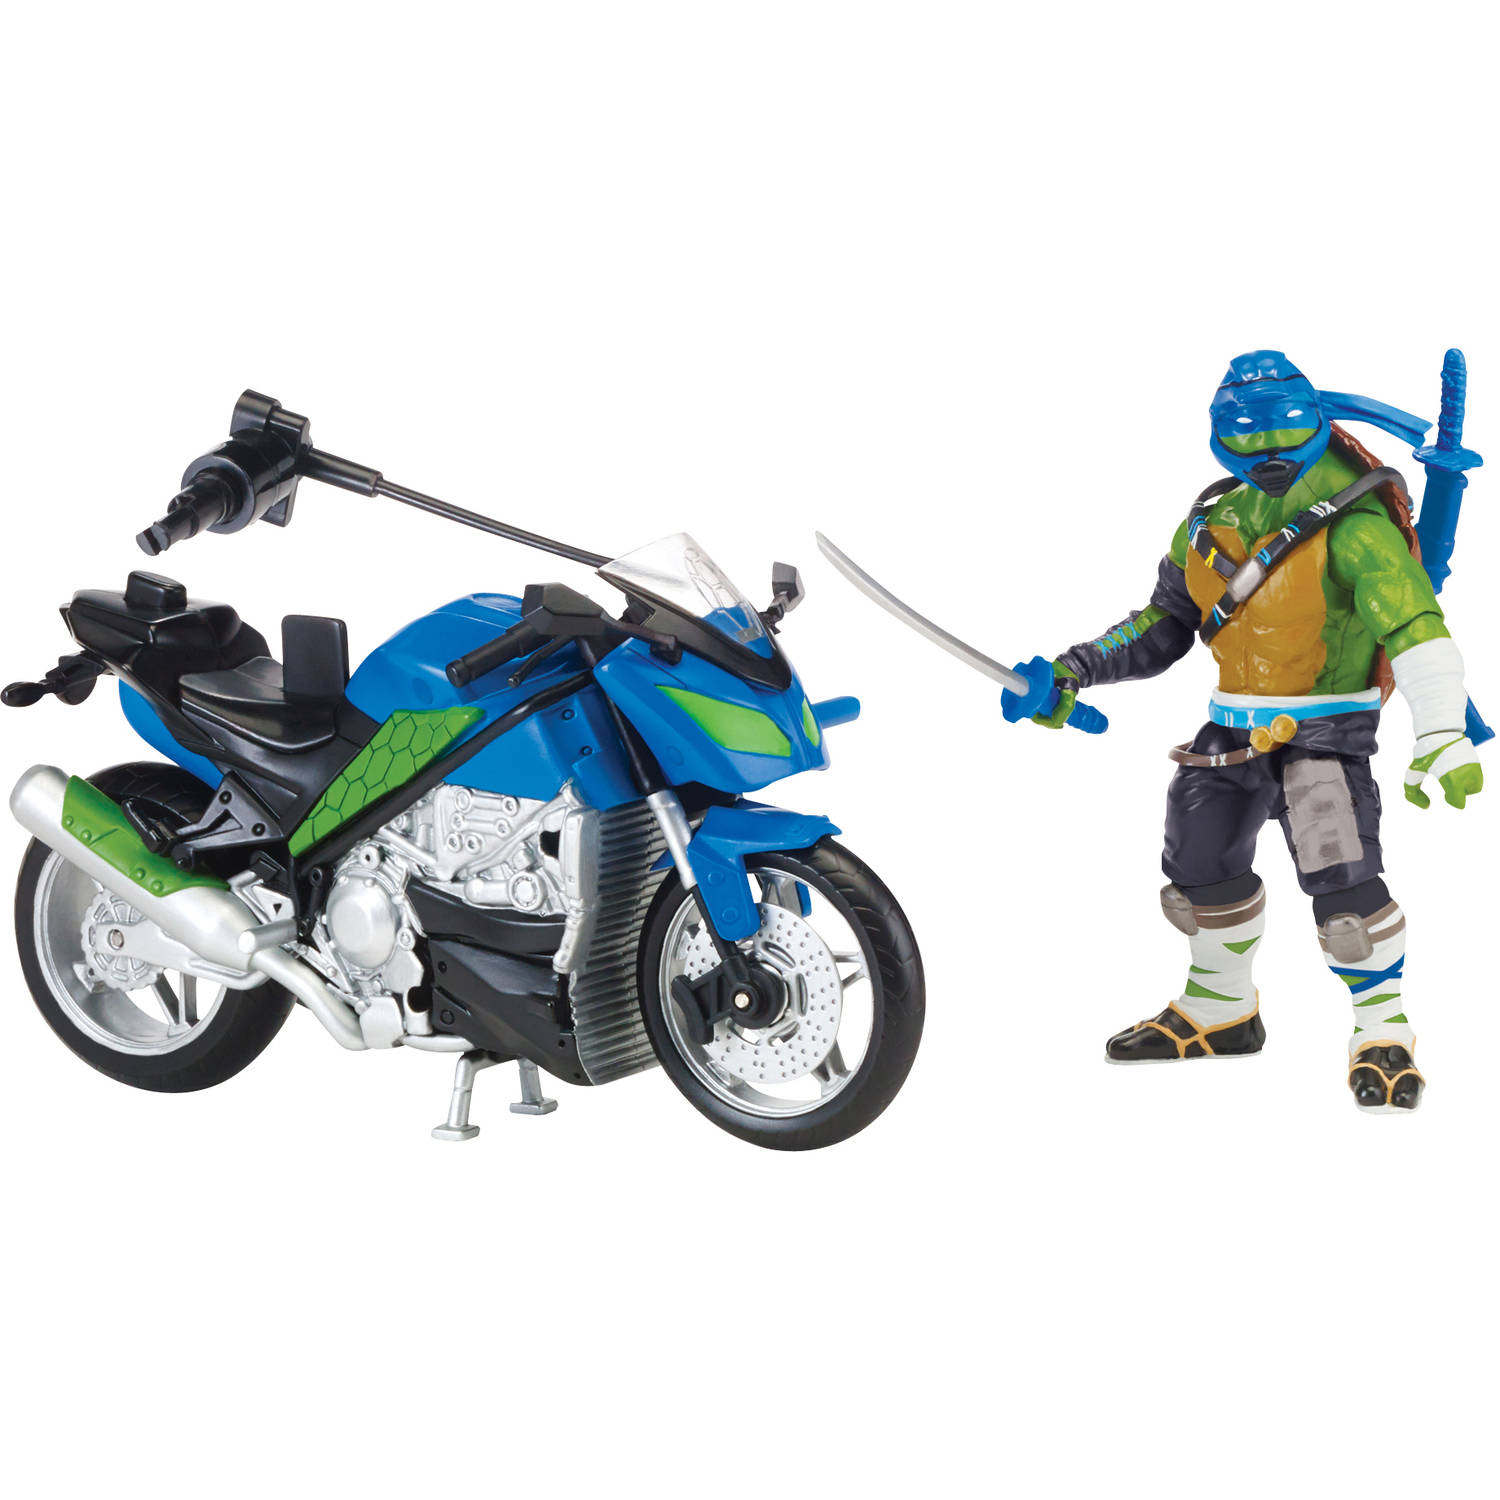 Teenage Mutant Ninja Turtles Movie II Leonardo with Motorcycle